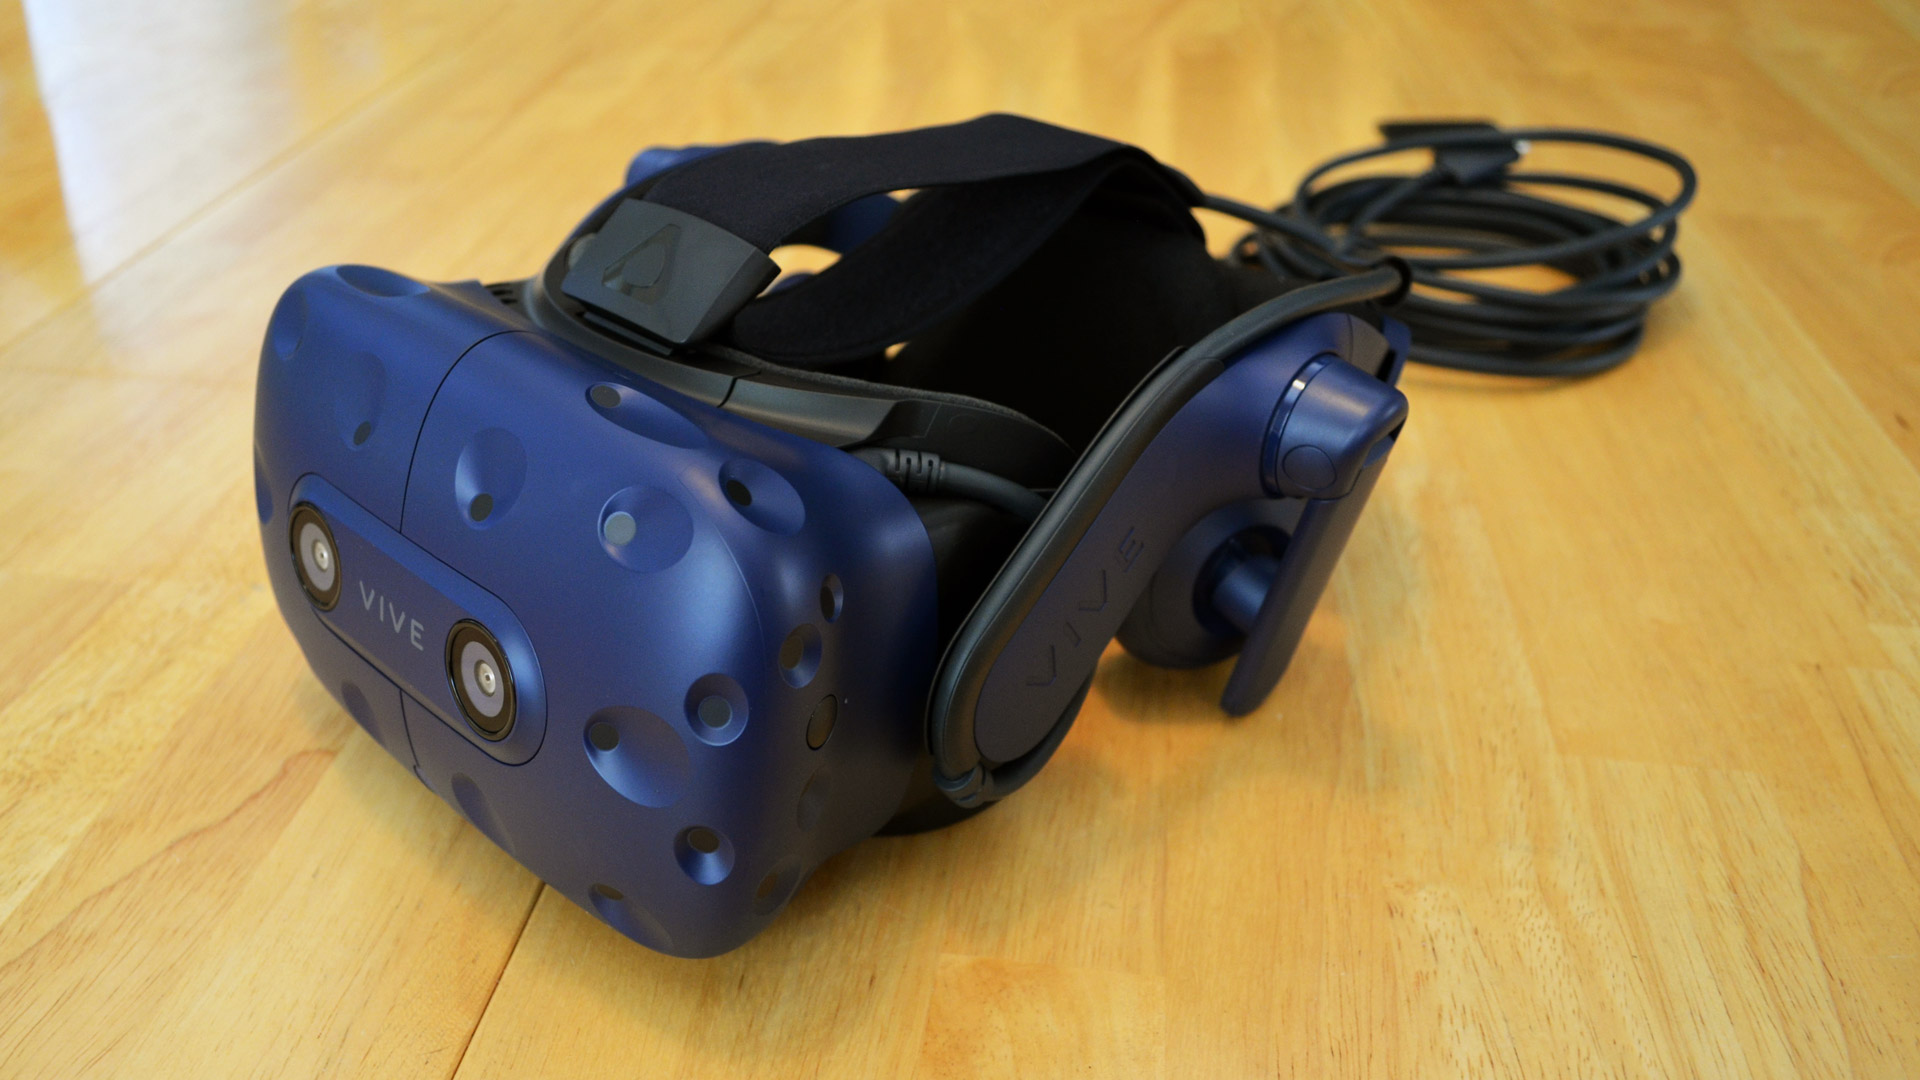 Hear Your Vive Pro For The First Time For HTC Vive Pro Works Great with Gear VR Lens Mod Super Bass Adjustable Headphone Adapters